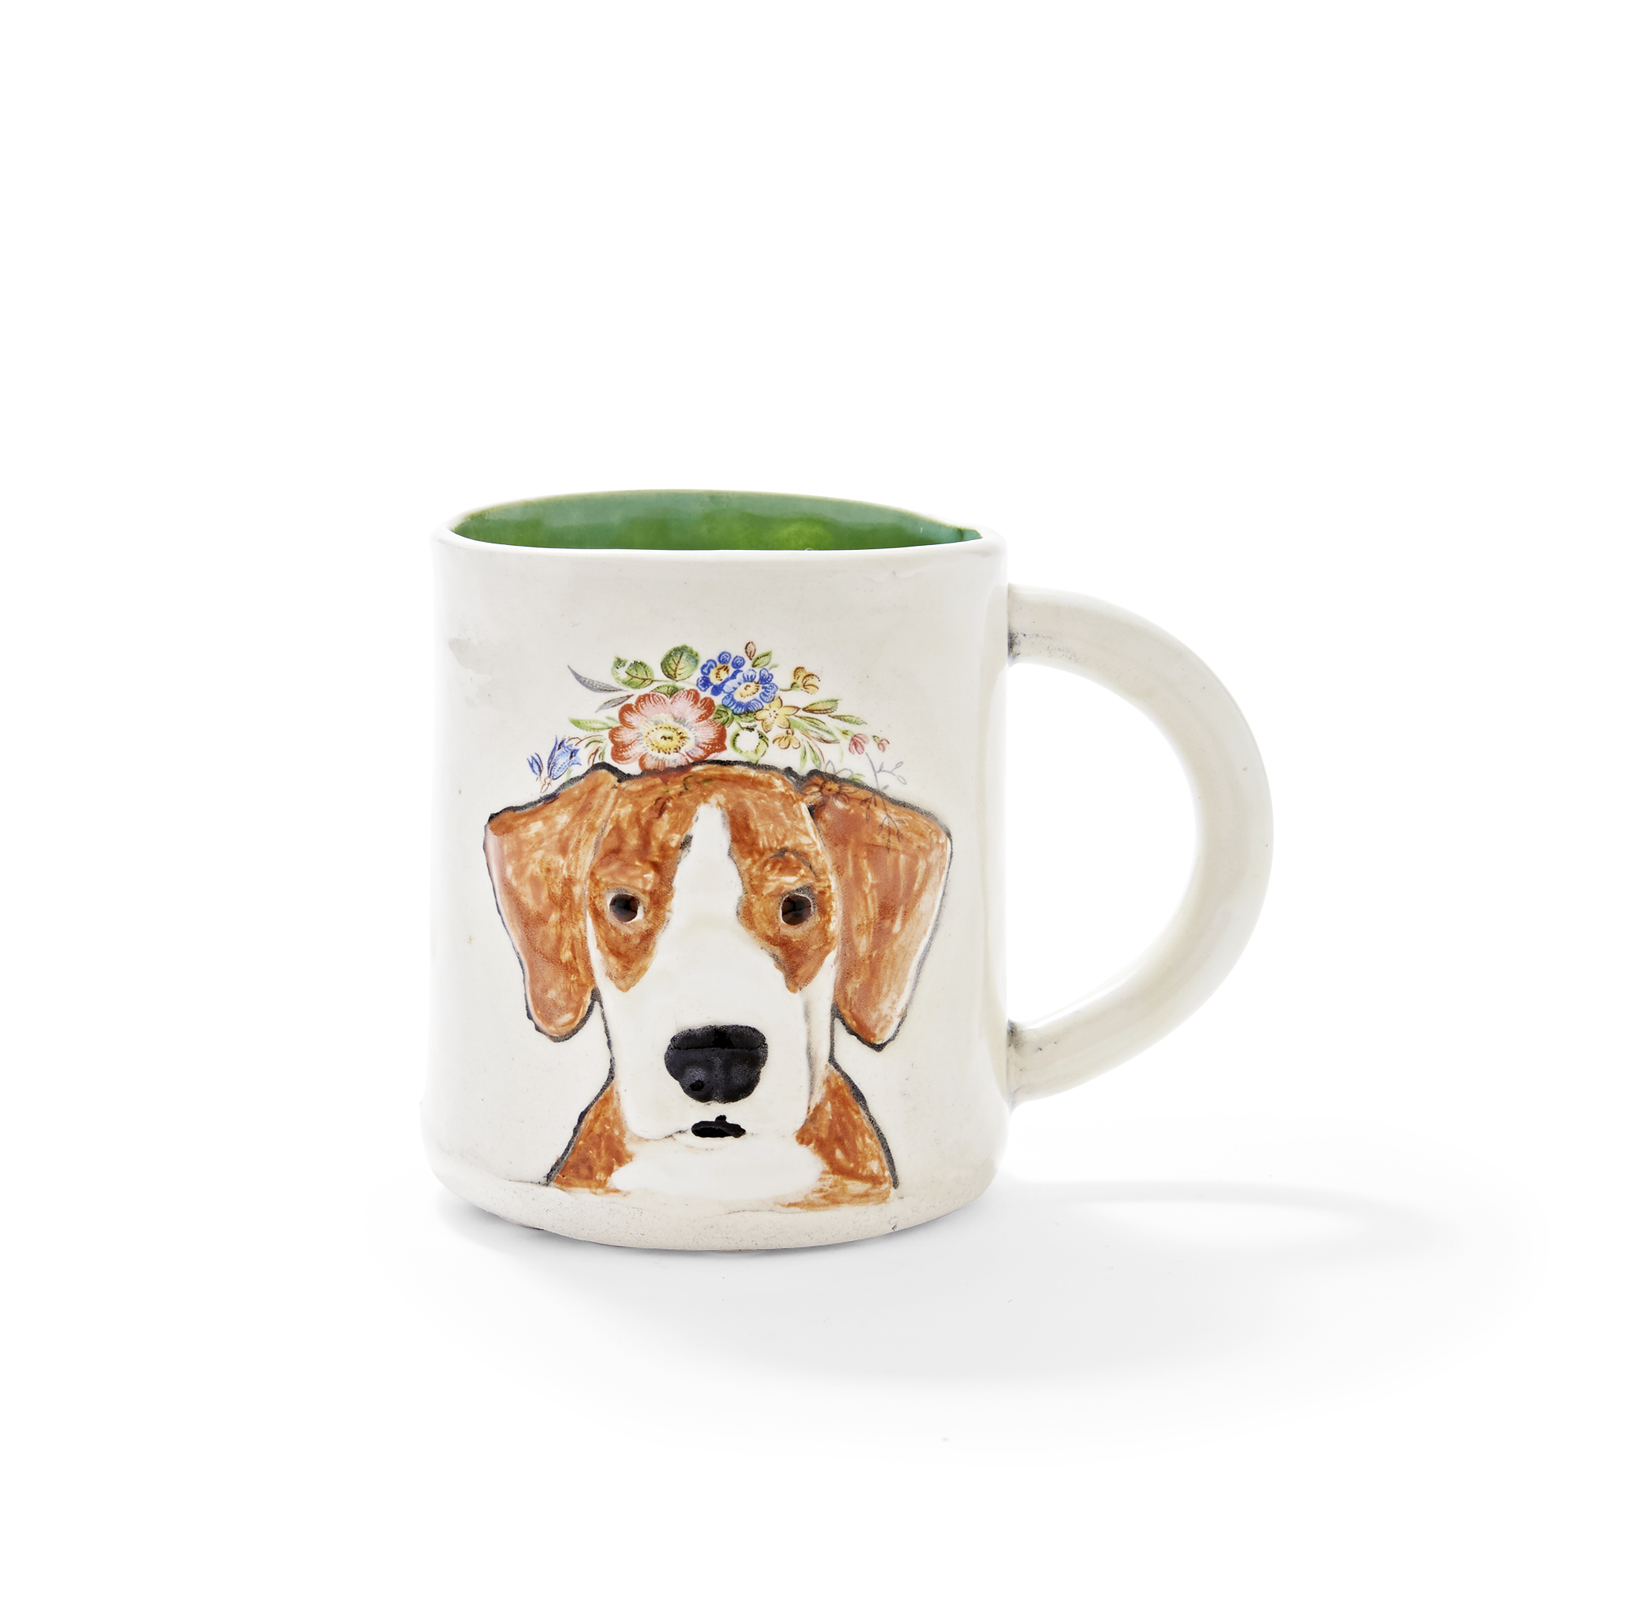 30 Best Gifts for Dog Lovers 2017 - Unique Dog Owner Christmas ...